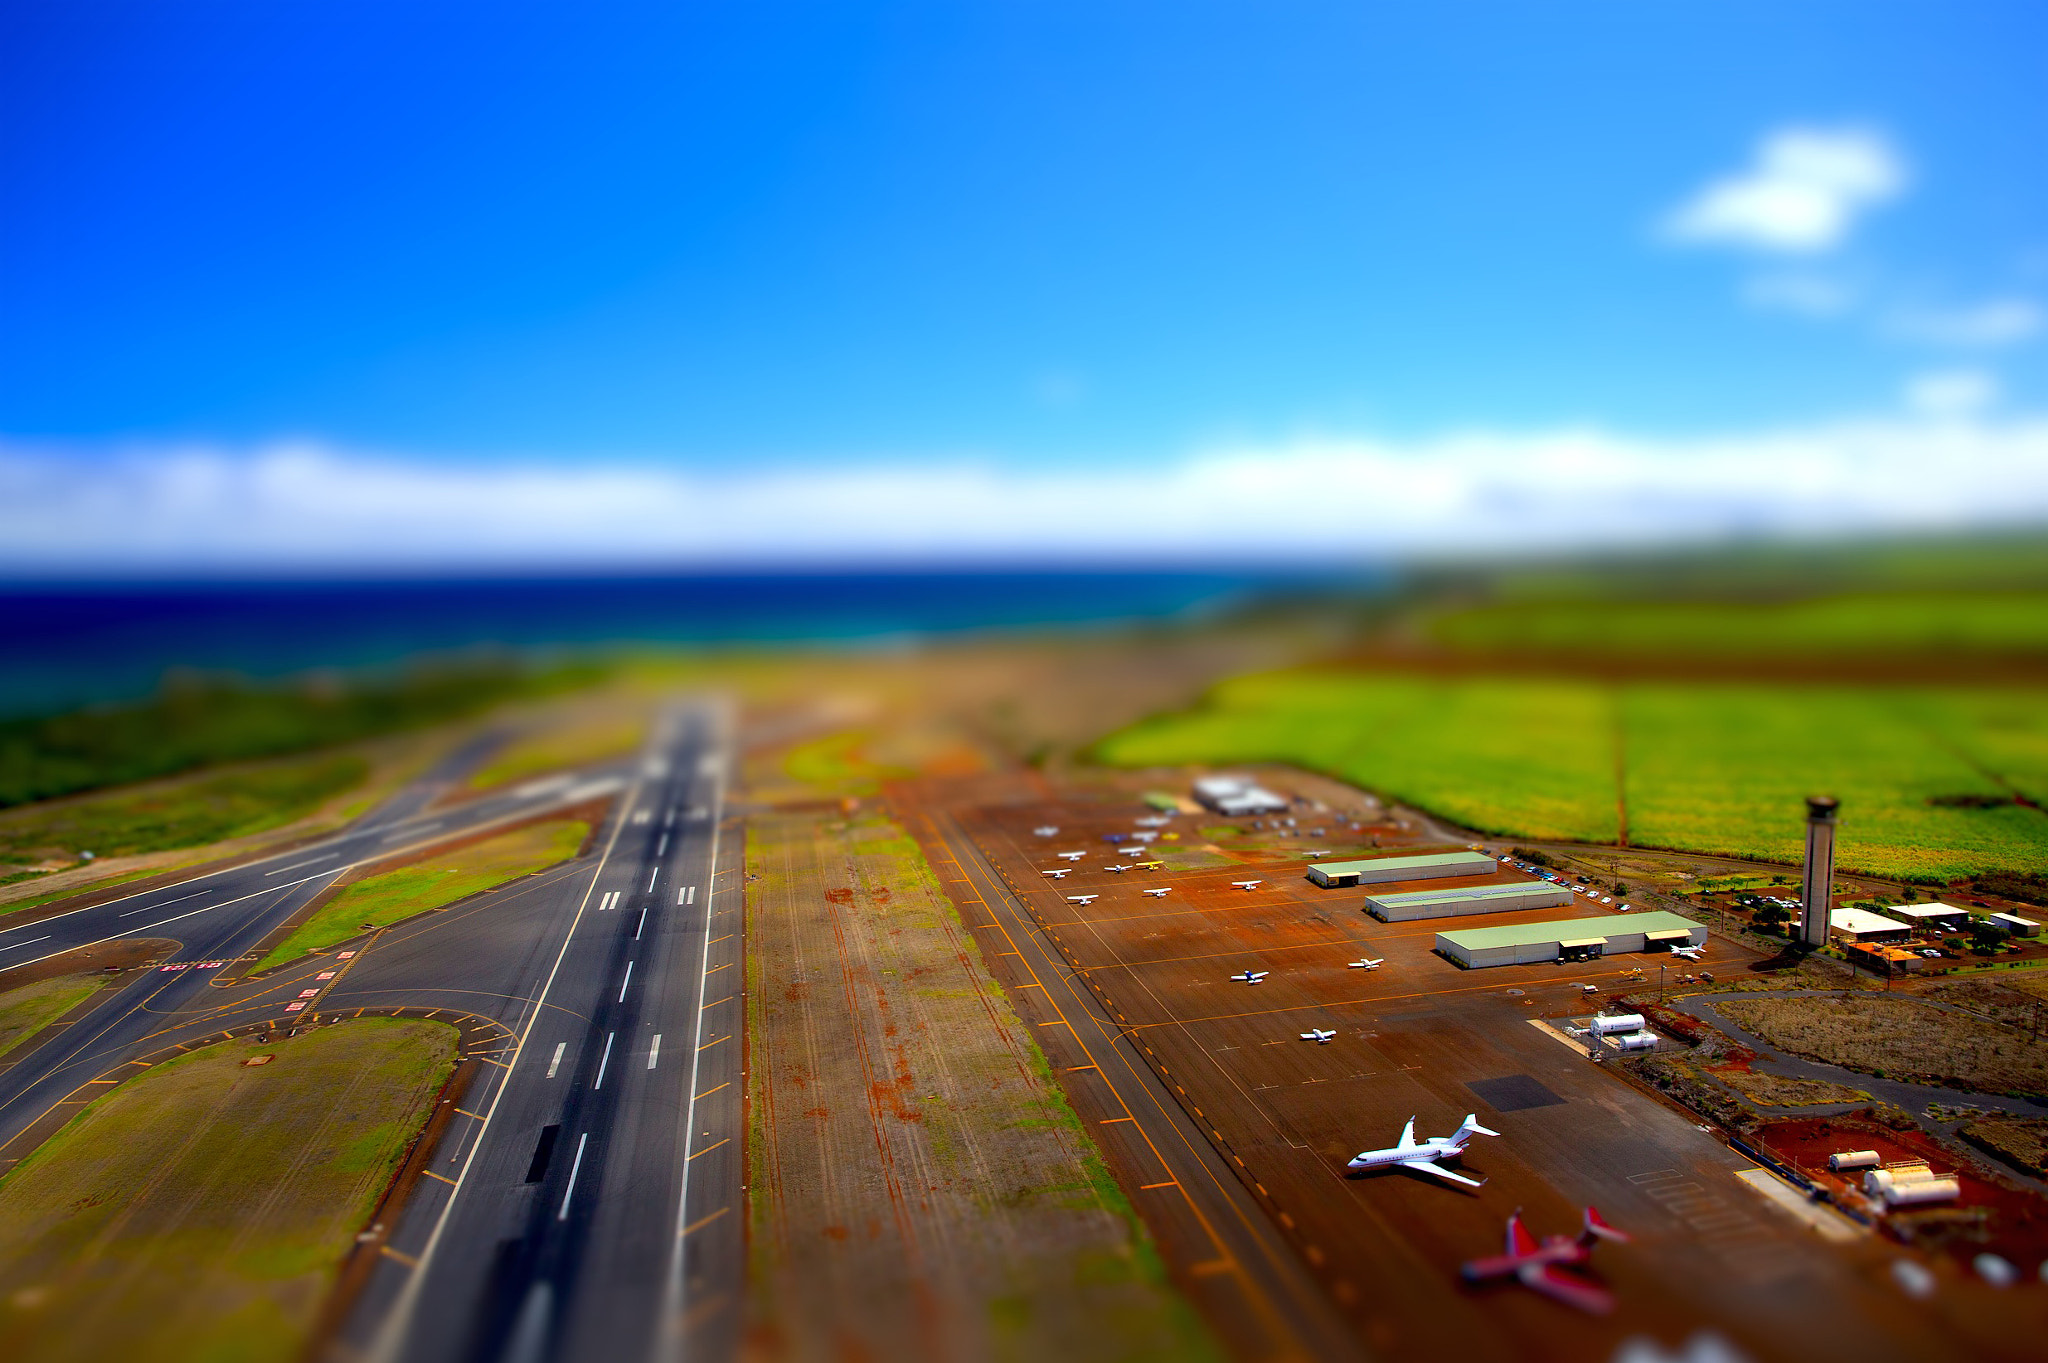 Photograph Kahului Airport Tilt/Shift by Dustin McGrew on 500px